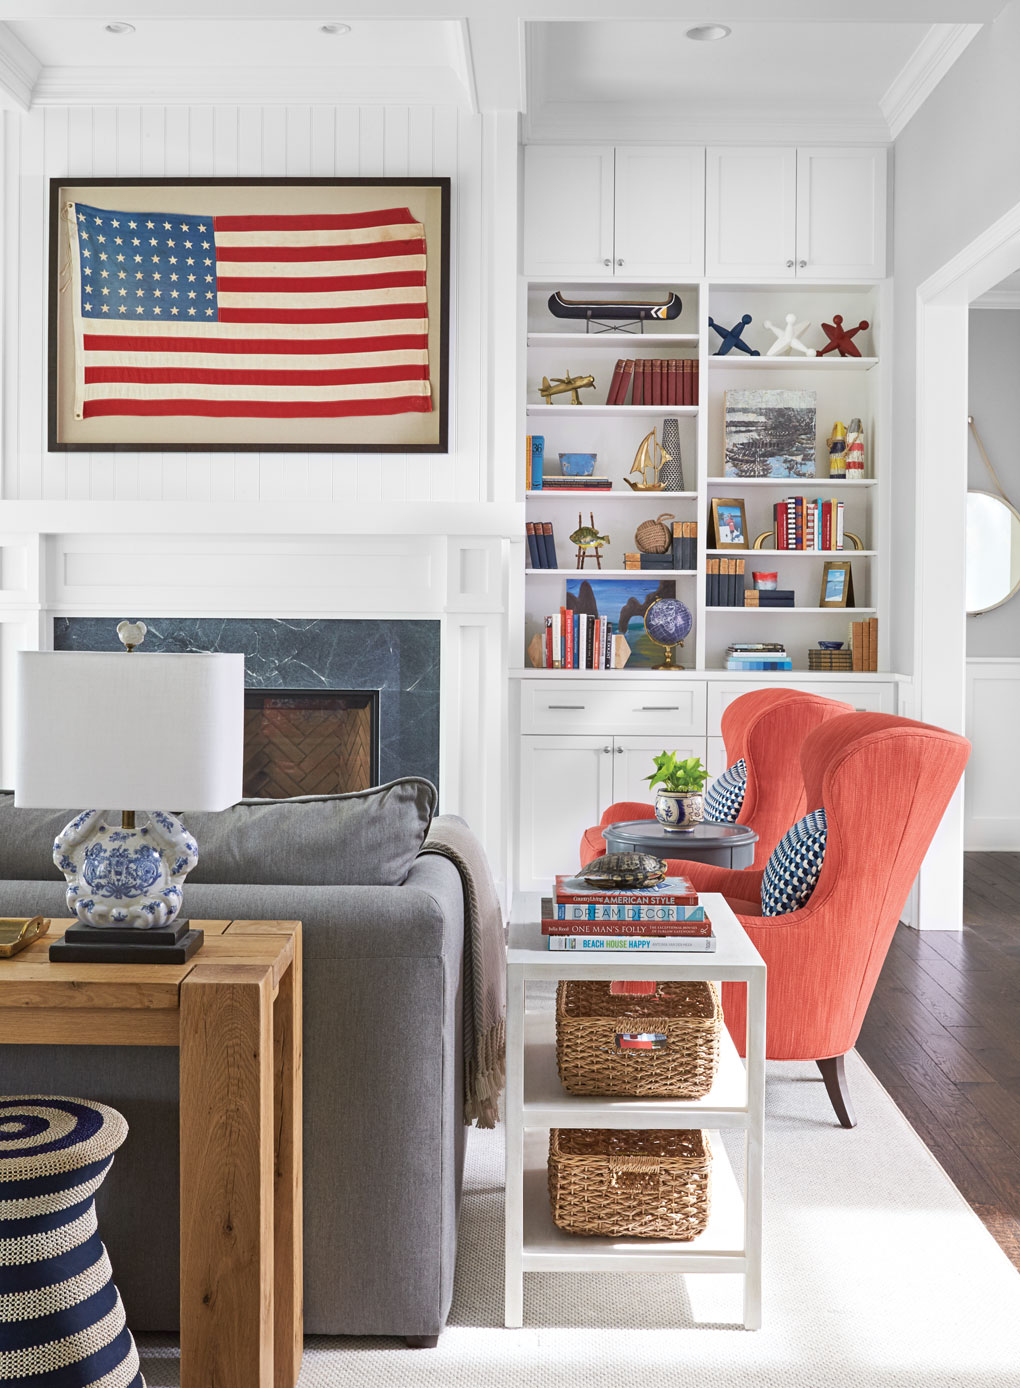 The centerpiece in this Lake Minnetonka home living room is a framed 48-star American flag over the fireplace.